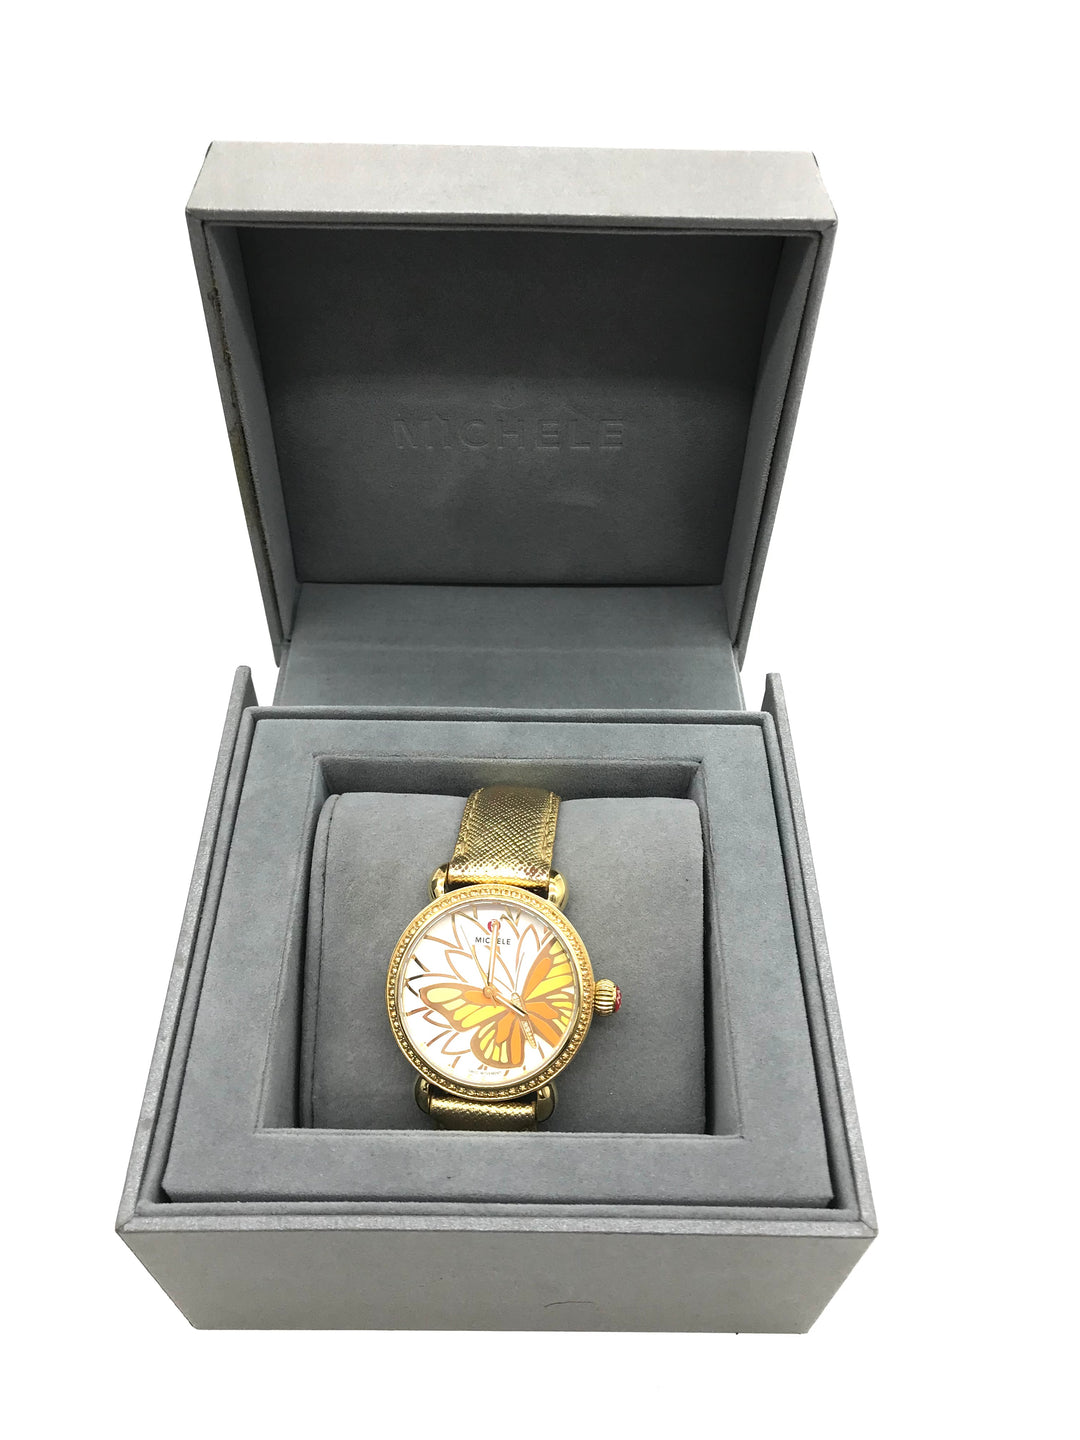 Primary Photo - <P>BRAND: MICHELE <BR>STYLE: LIMITED EDITION BUTTERFLY WATCH - GARDEN PARTY COLLECTION <BR>COLOR: BUTTERFLIES <BR>SKU: 262-26275-69361<BR>WEAR SHOWS ON THE STRAPS <BR>BATTERY NEEDED - AS IS</P>